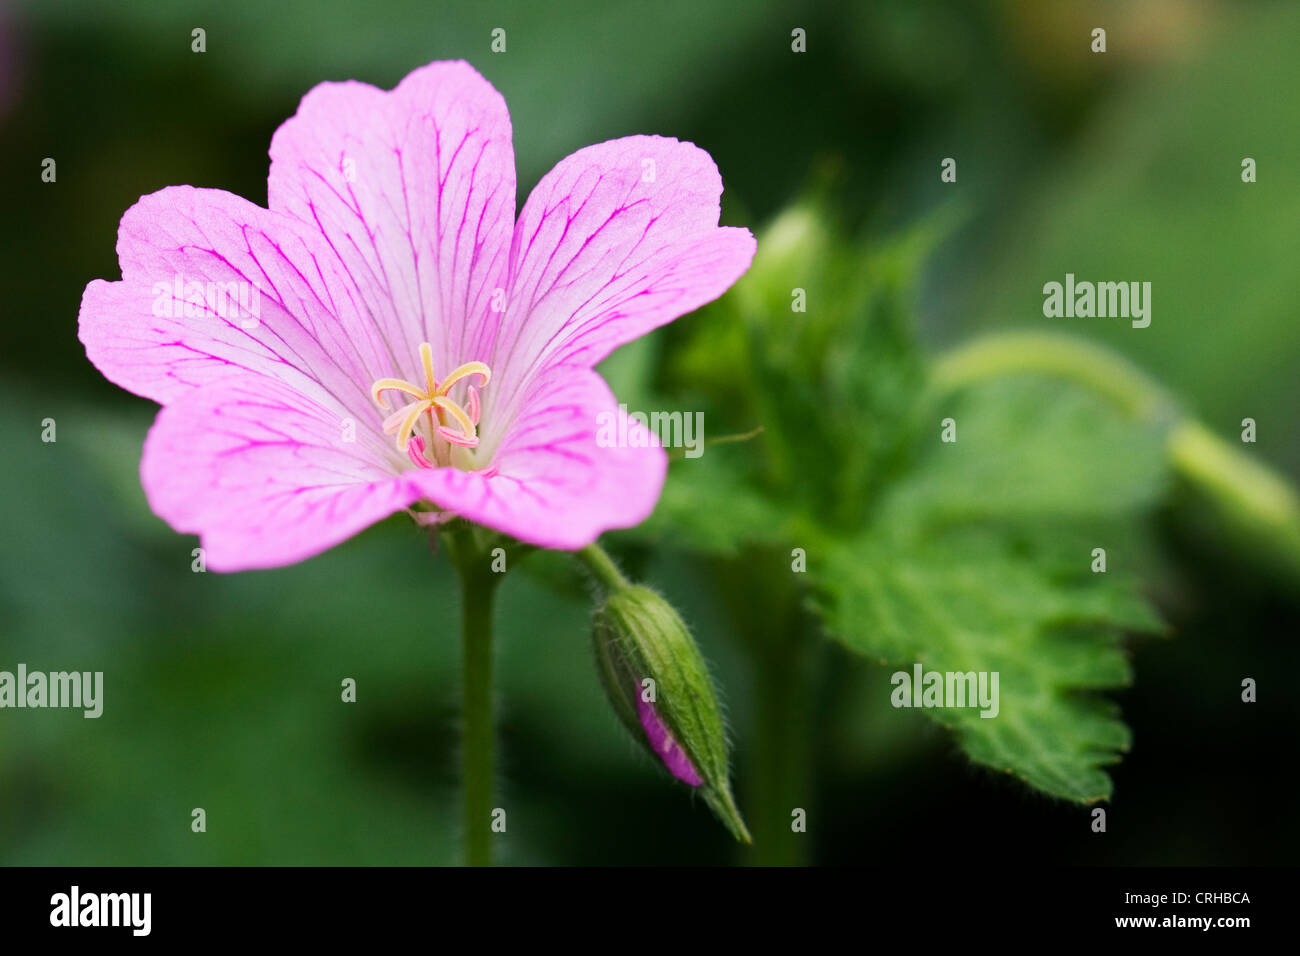 Geranium x oxonianum 'Wargrave pink' in the garden. - Stock Image